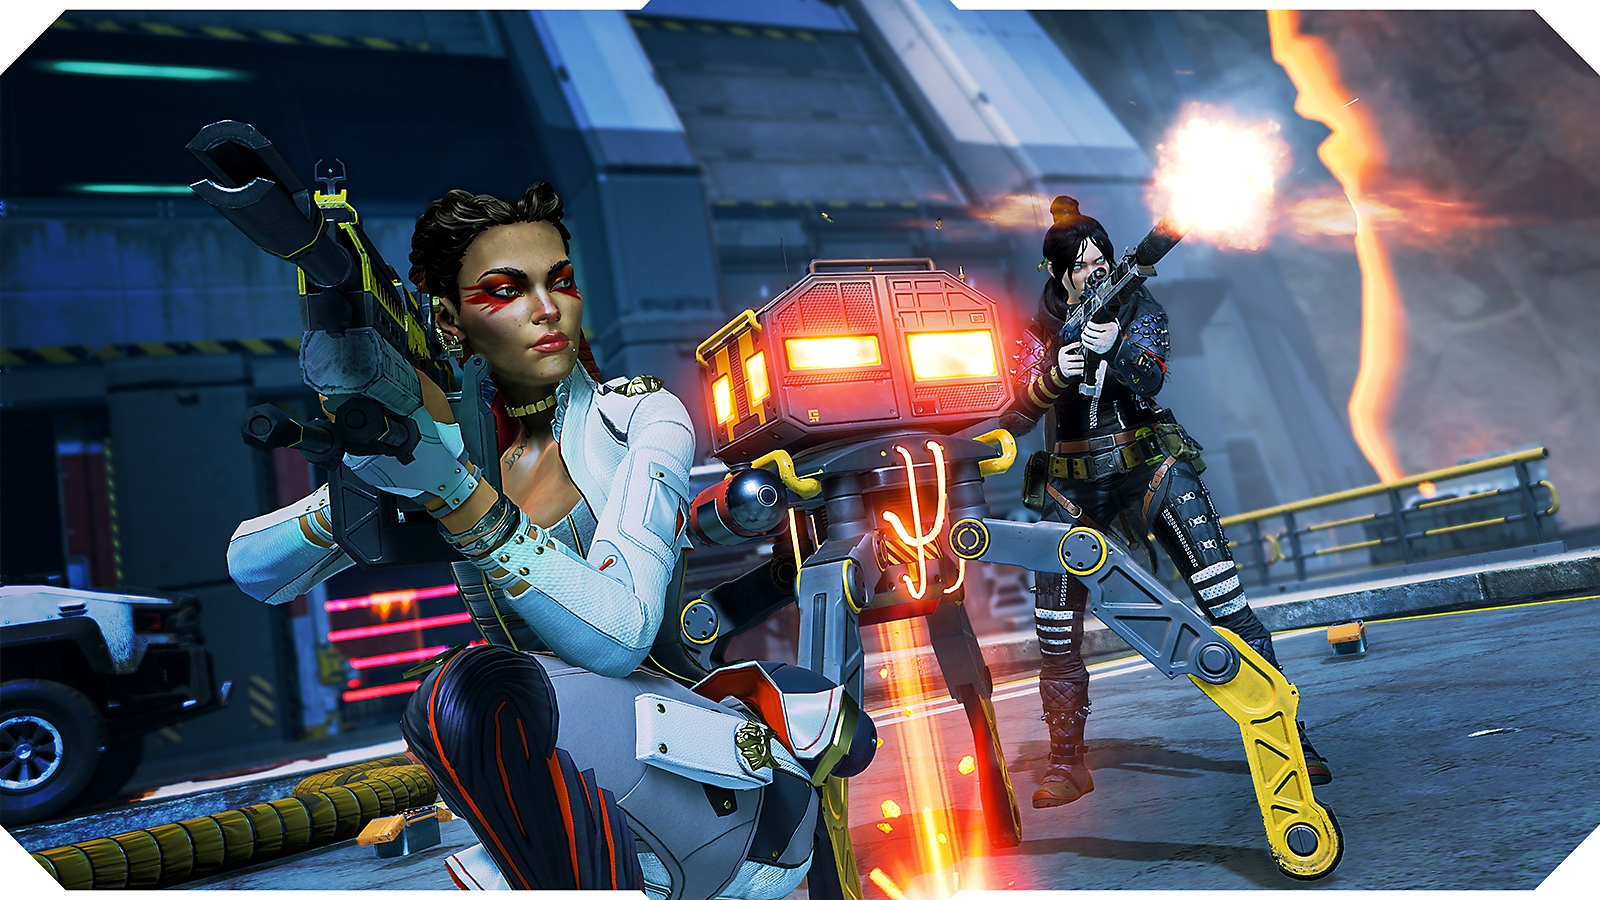 Apex Legends screenshot showing Loba and Wraith